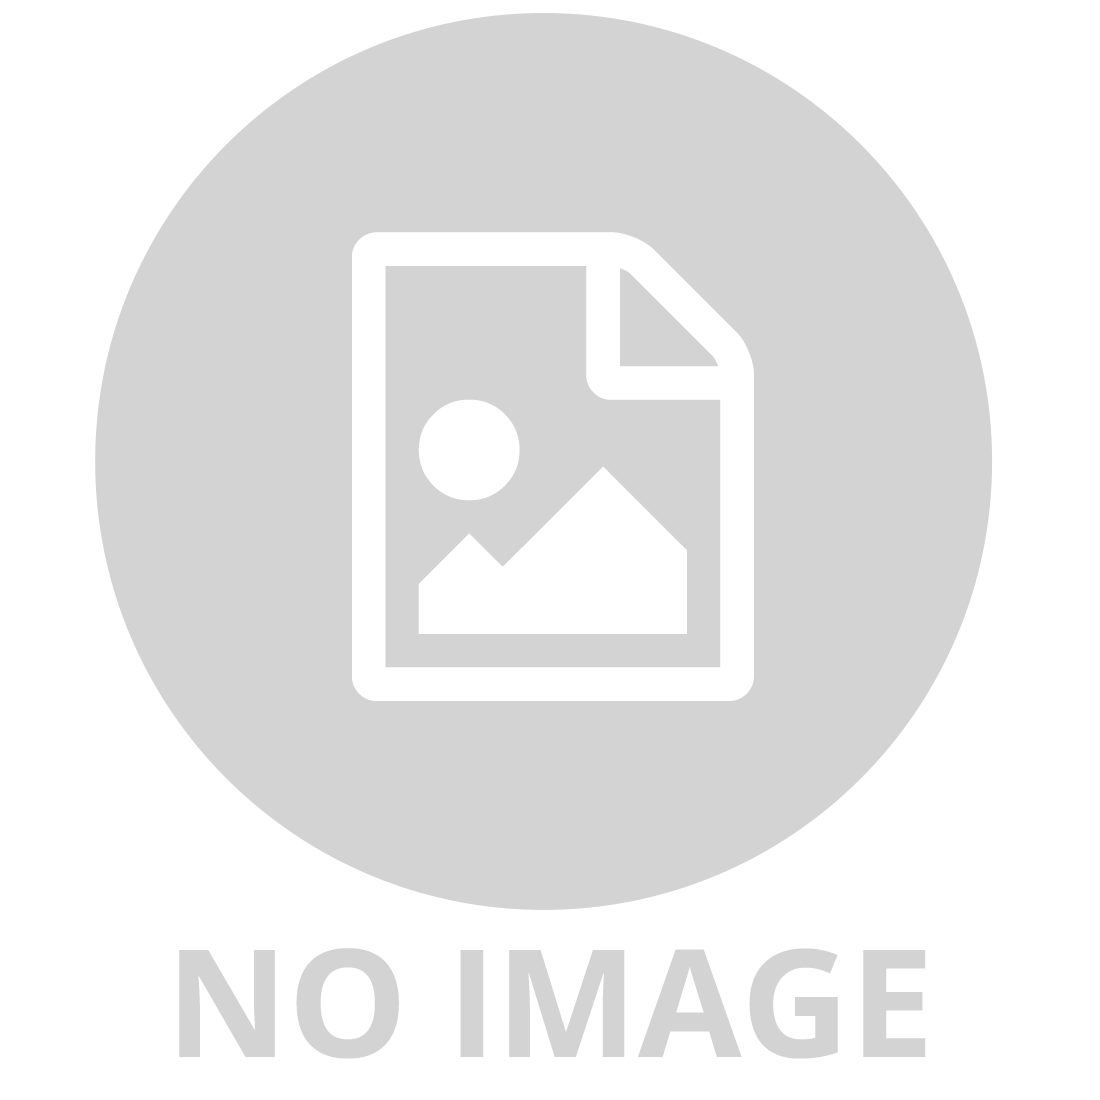 CARRERA EVOLUTION ALFA ROMEO GTA SILHOUETTE RACE 3